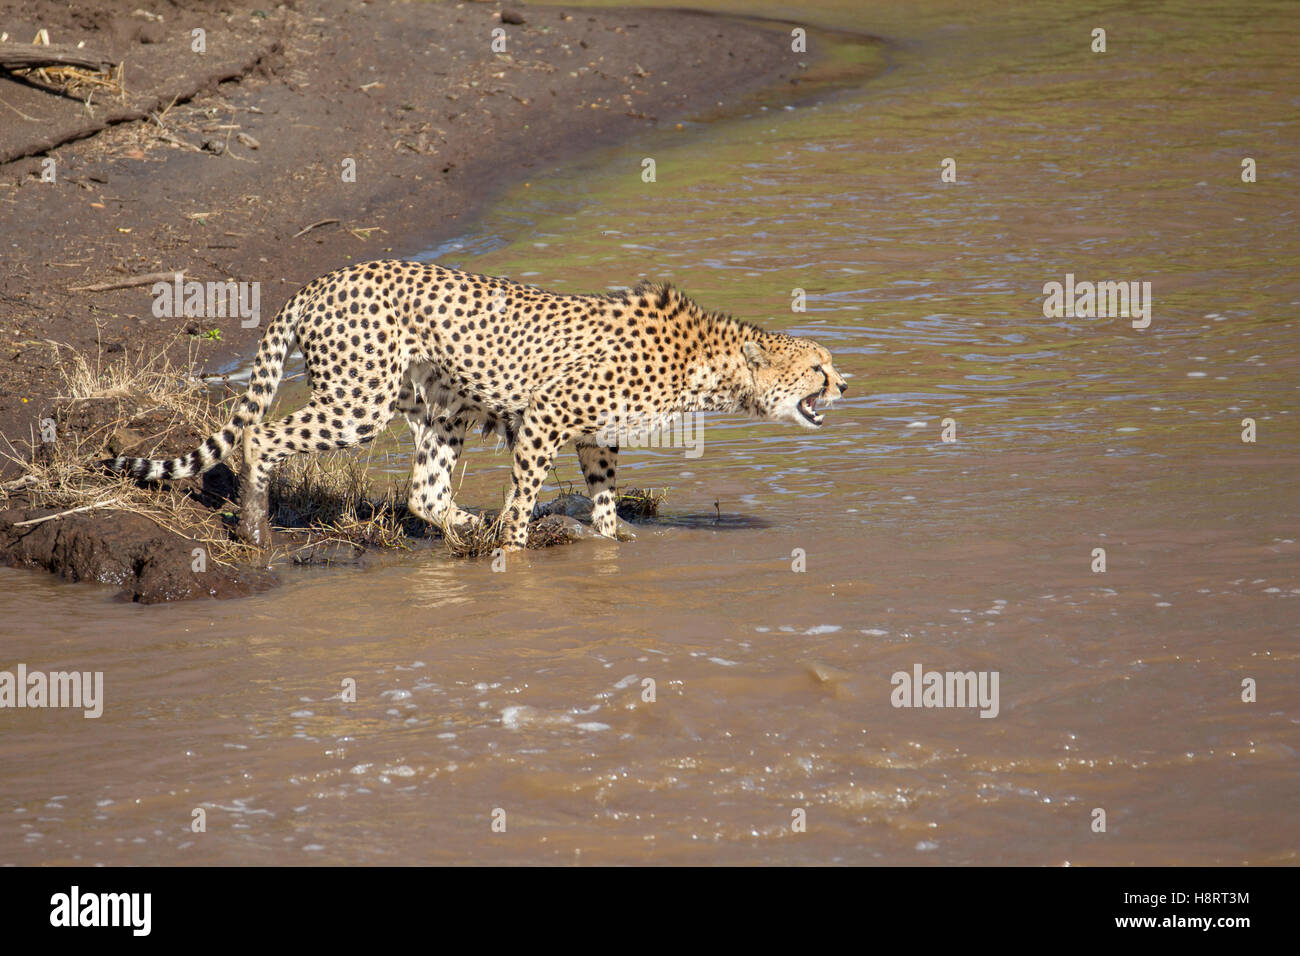 Cheetah Acinonyx jubatus in Laikipia Kenya Africa, snarling and about to jump into the river - Stock Image